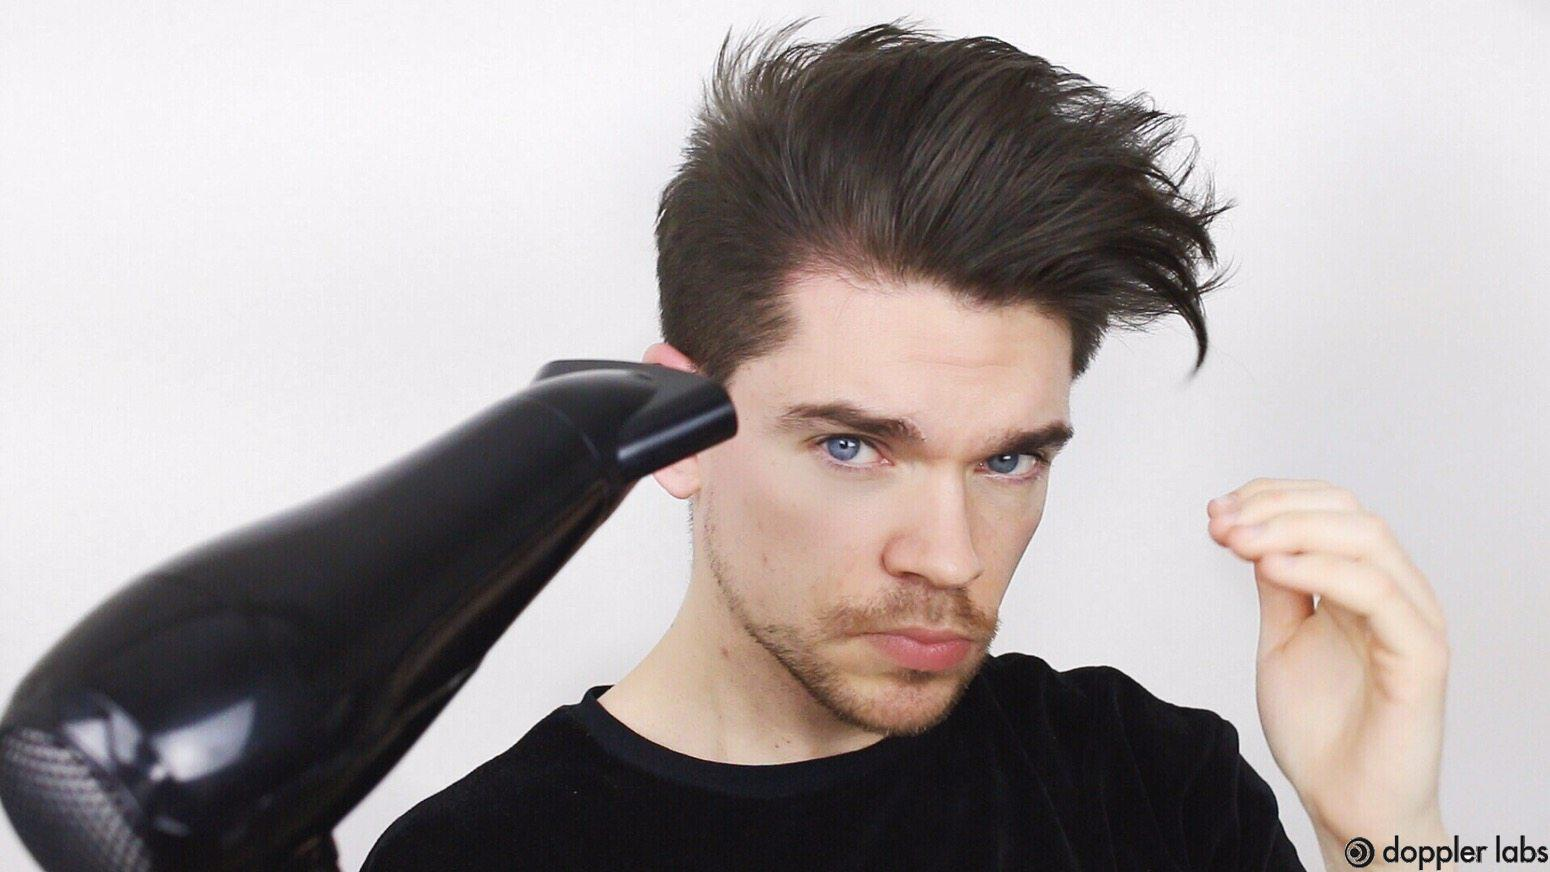 Use a dryer for your earphone hair